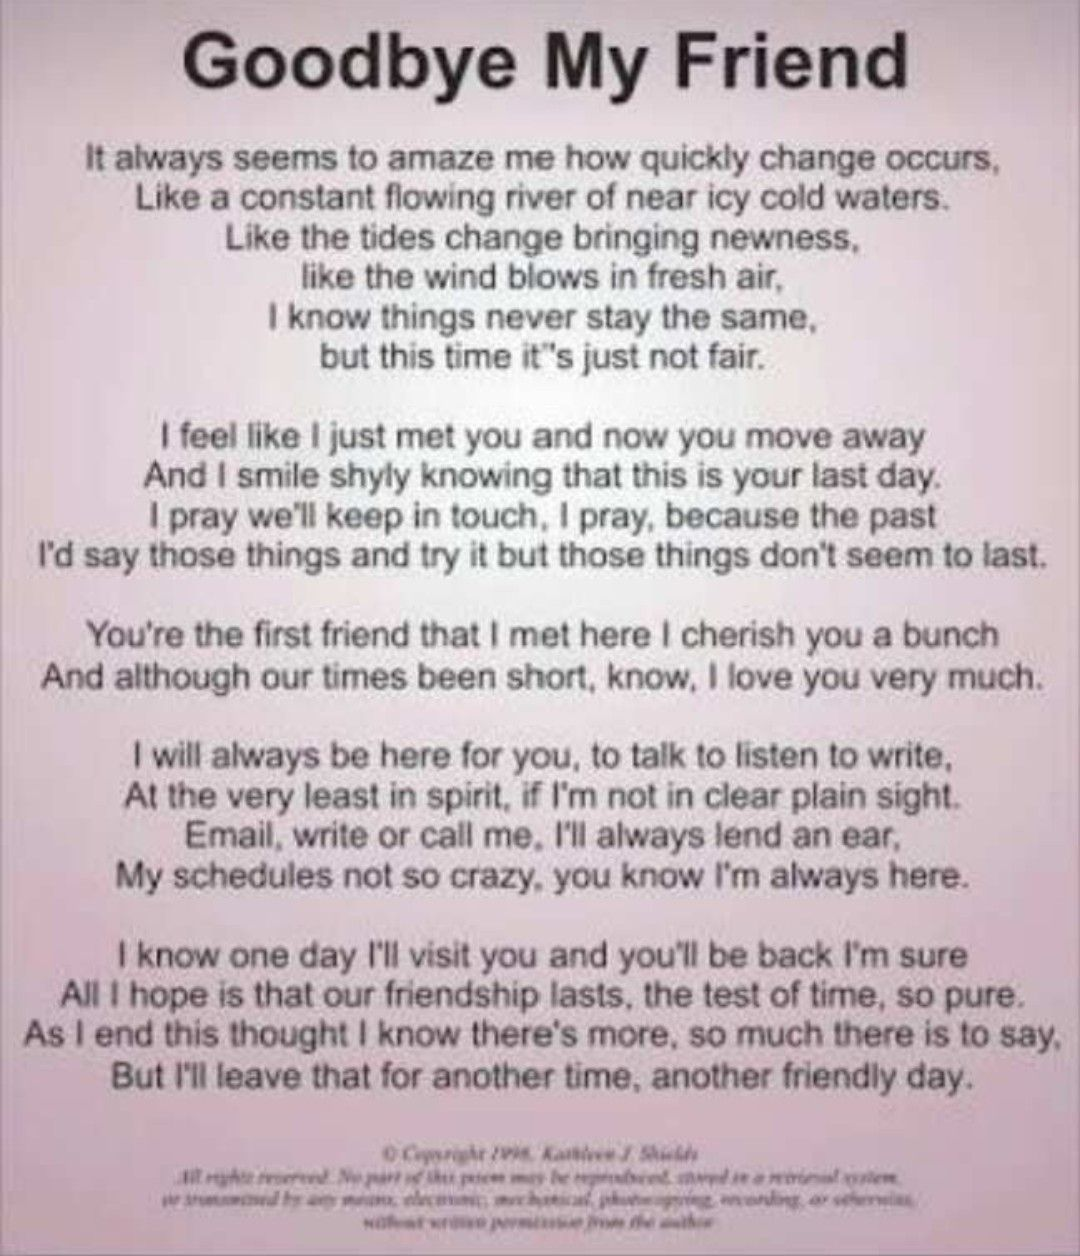 My Best Friend Died Suddenly Quotes: Pin By Nitanshi D. On Excerpts From A Book I'll Never